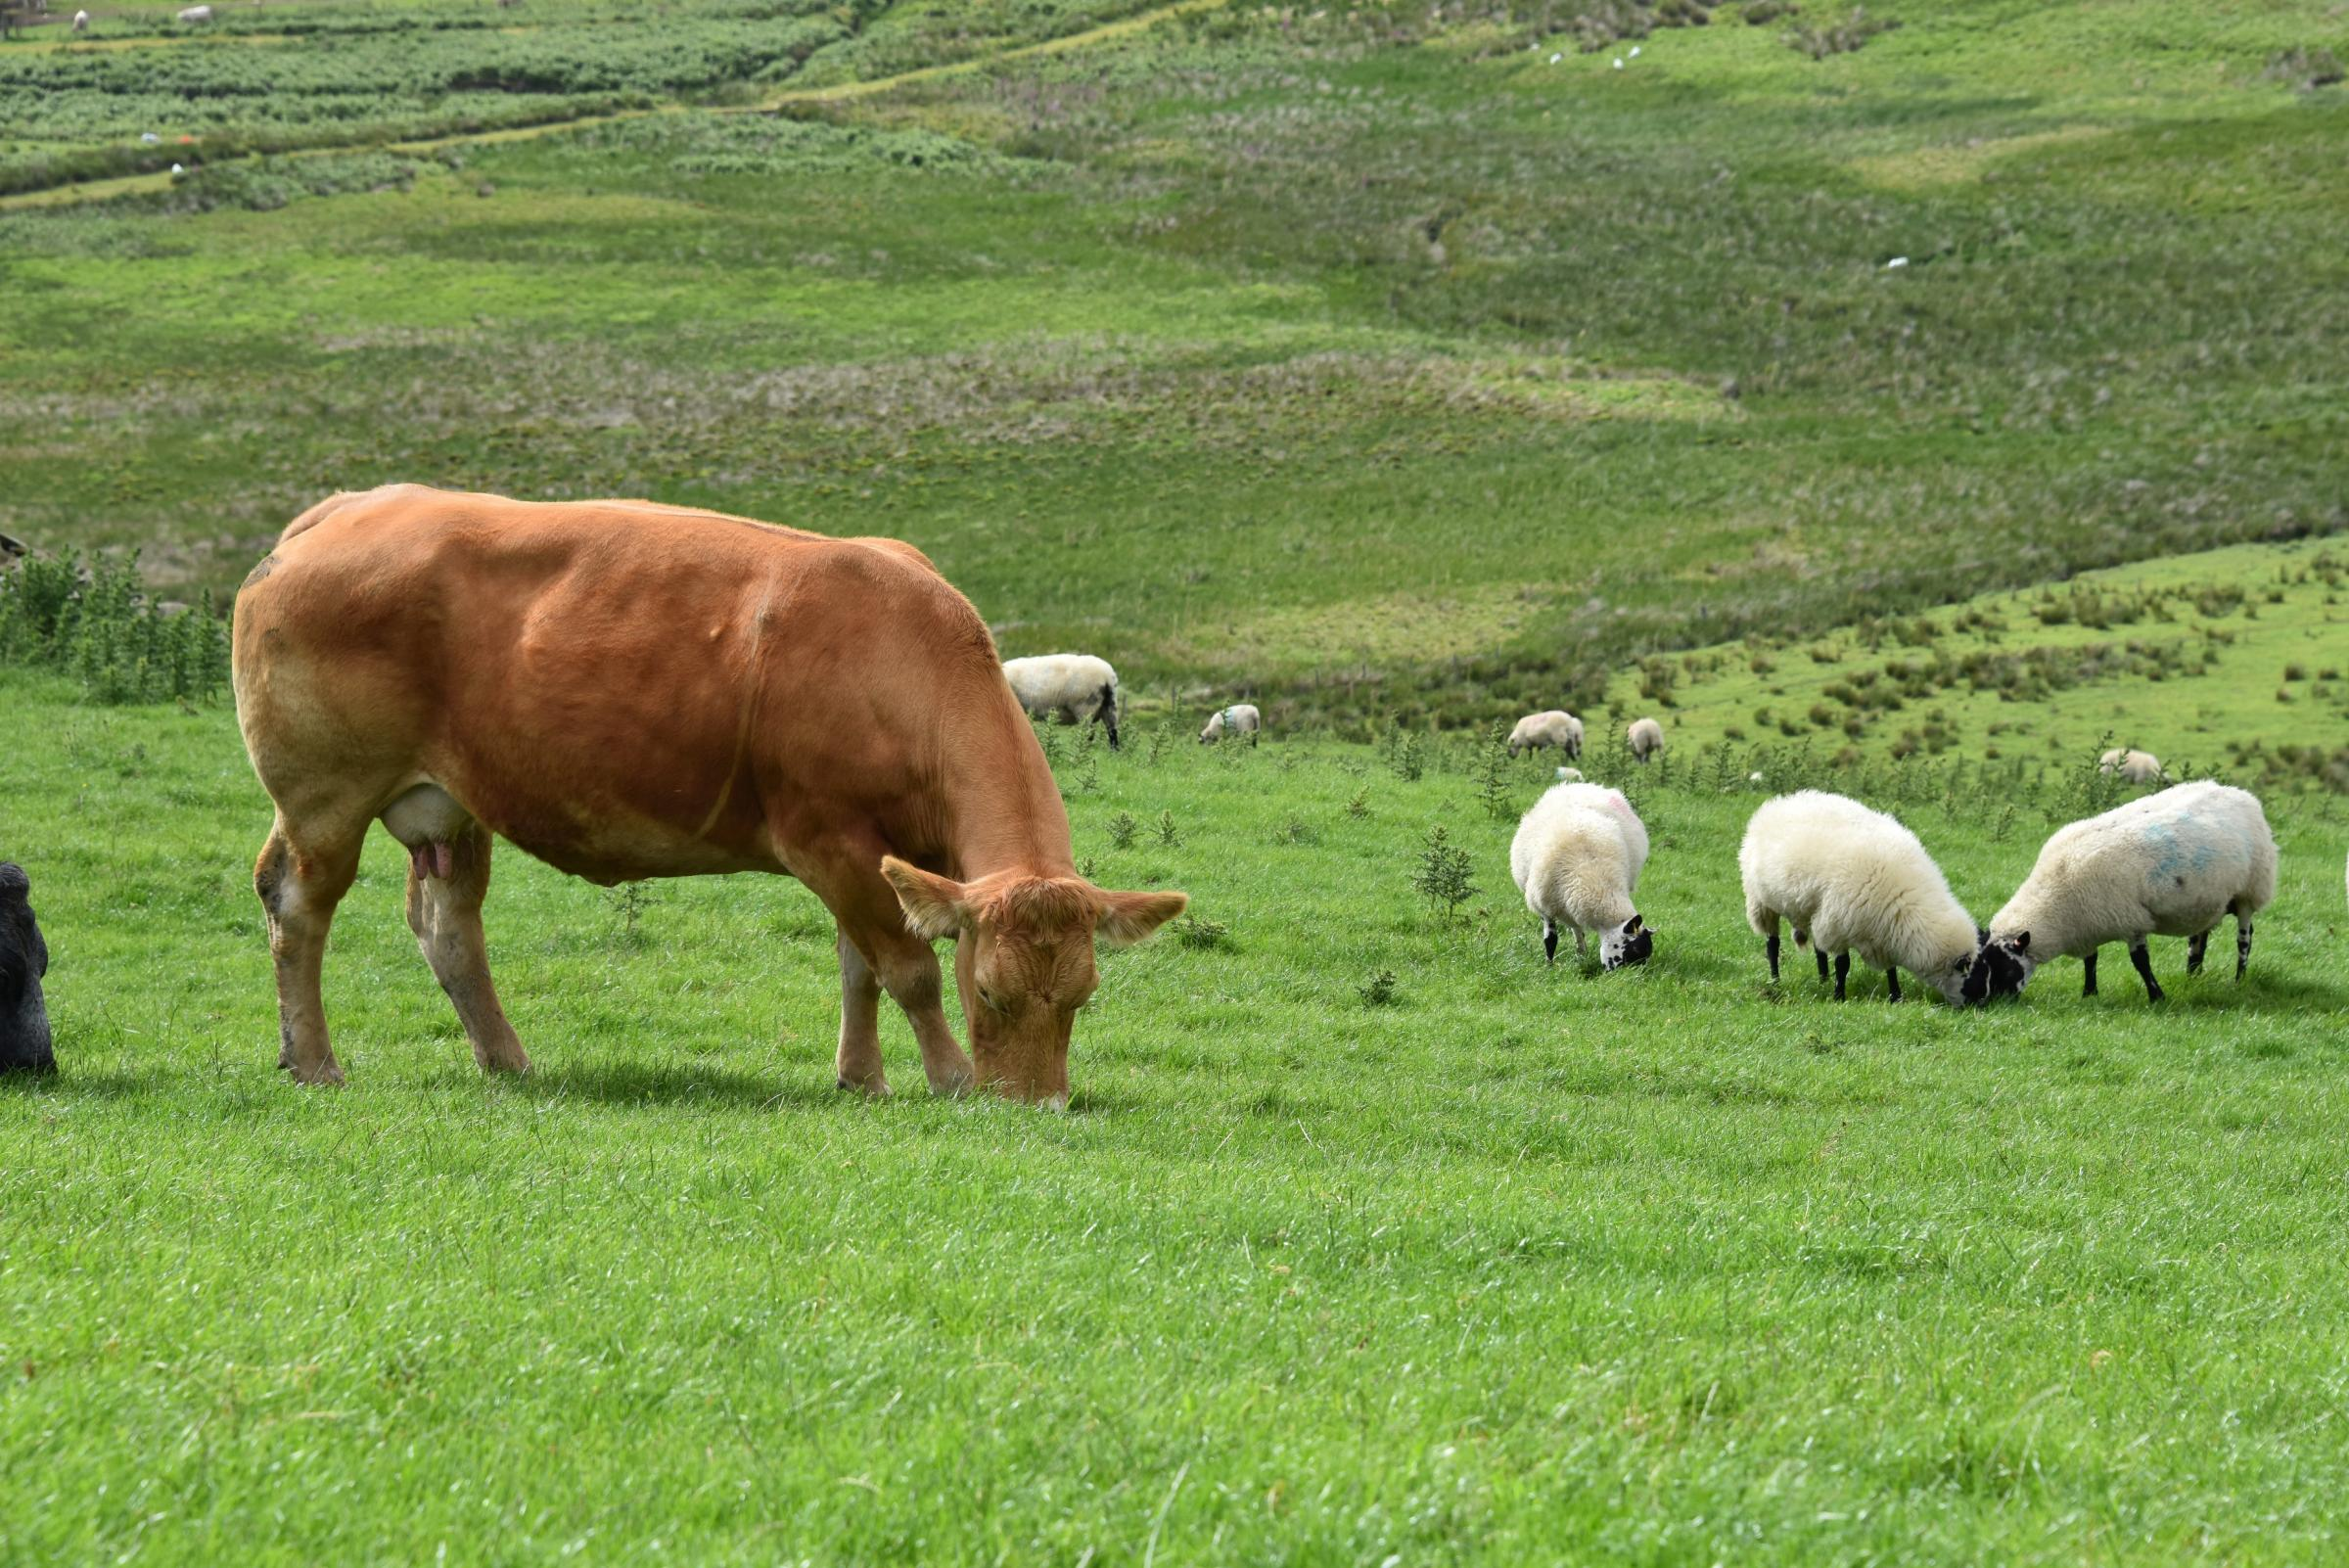 What is the optimum size for livestock?